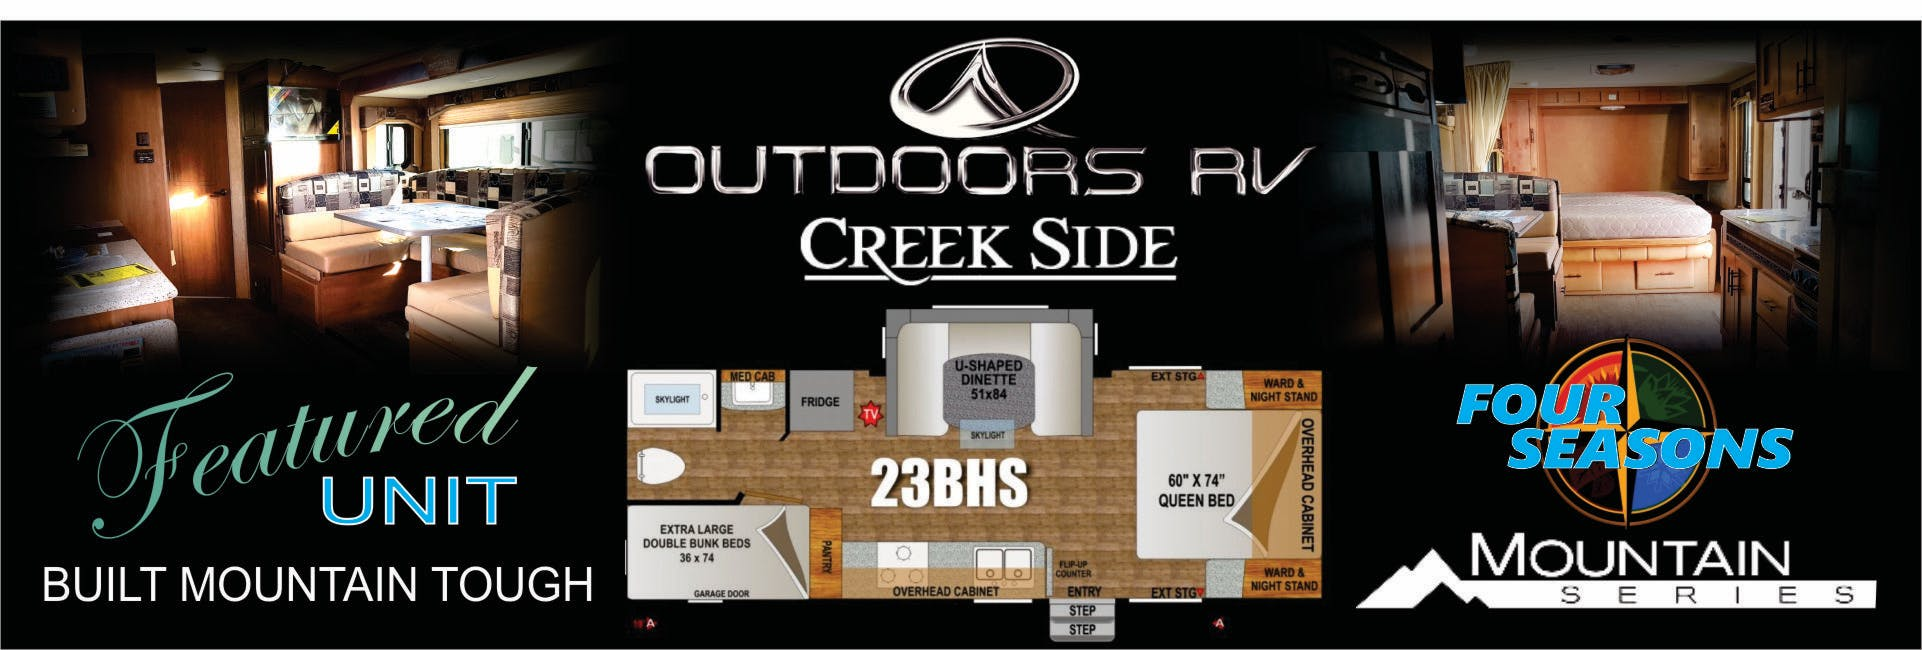 2017 Outdoors RV Creek Side interior and floor plan